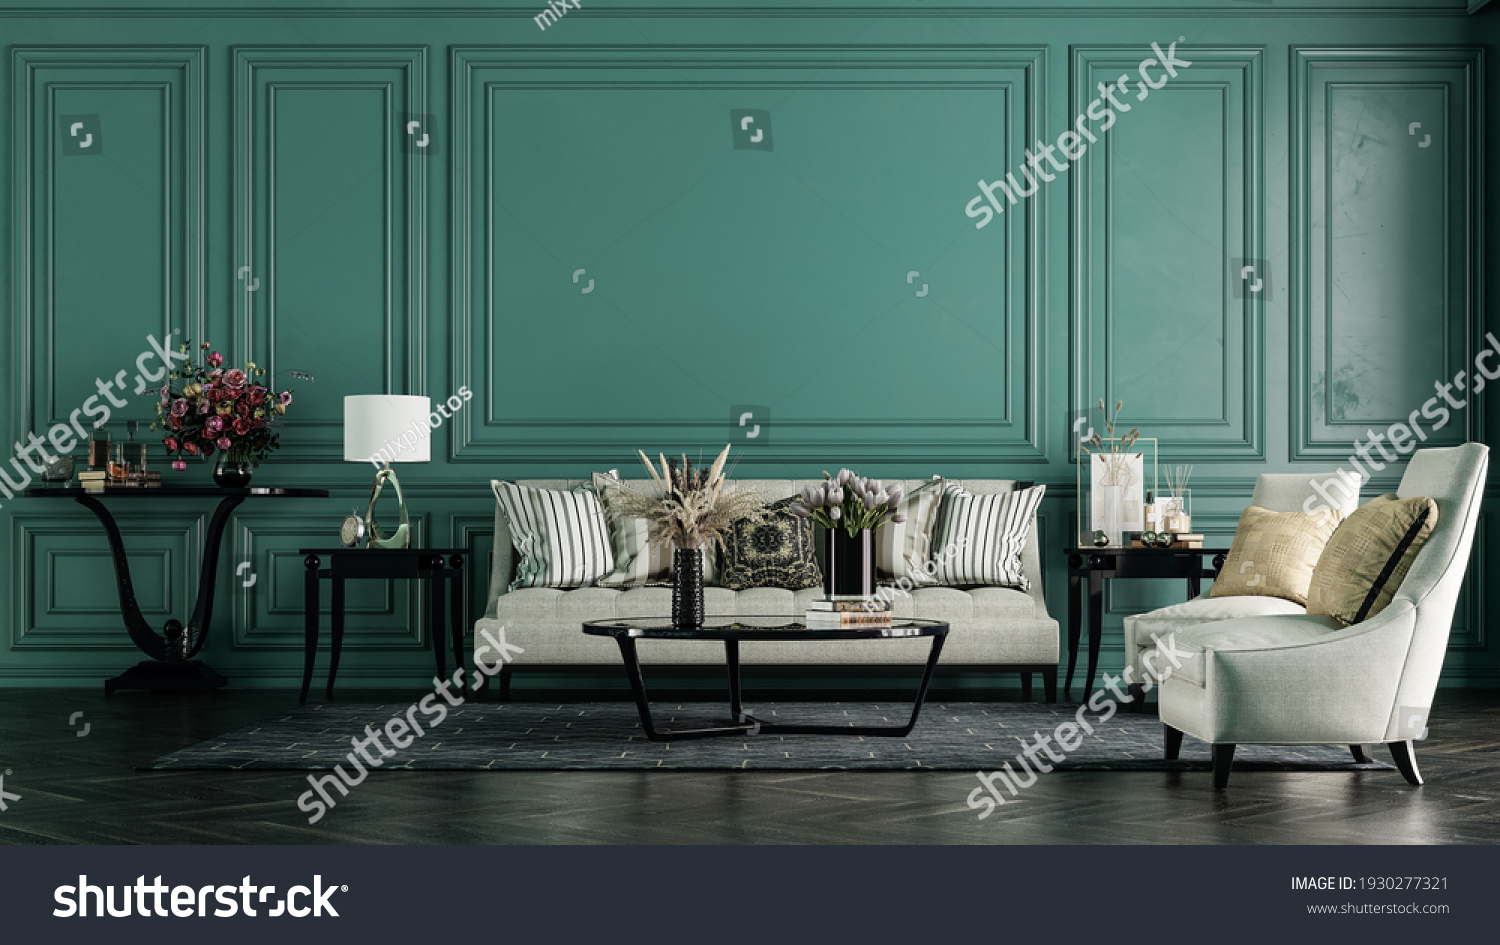 Modern interior design for home, office, interior details, upholstered furniture on the background of a dark green classic wall. #1930277321